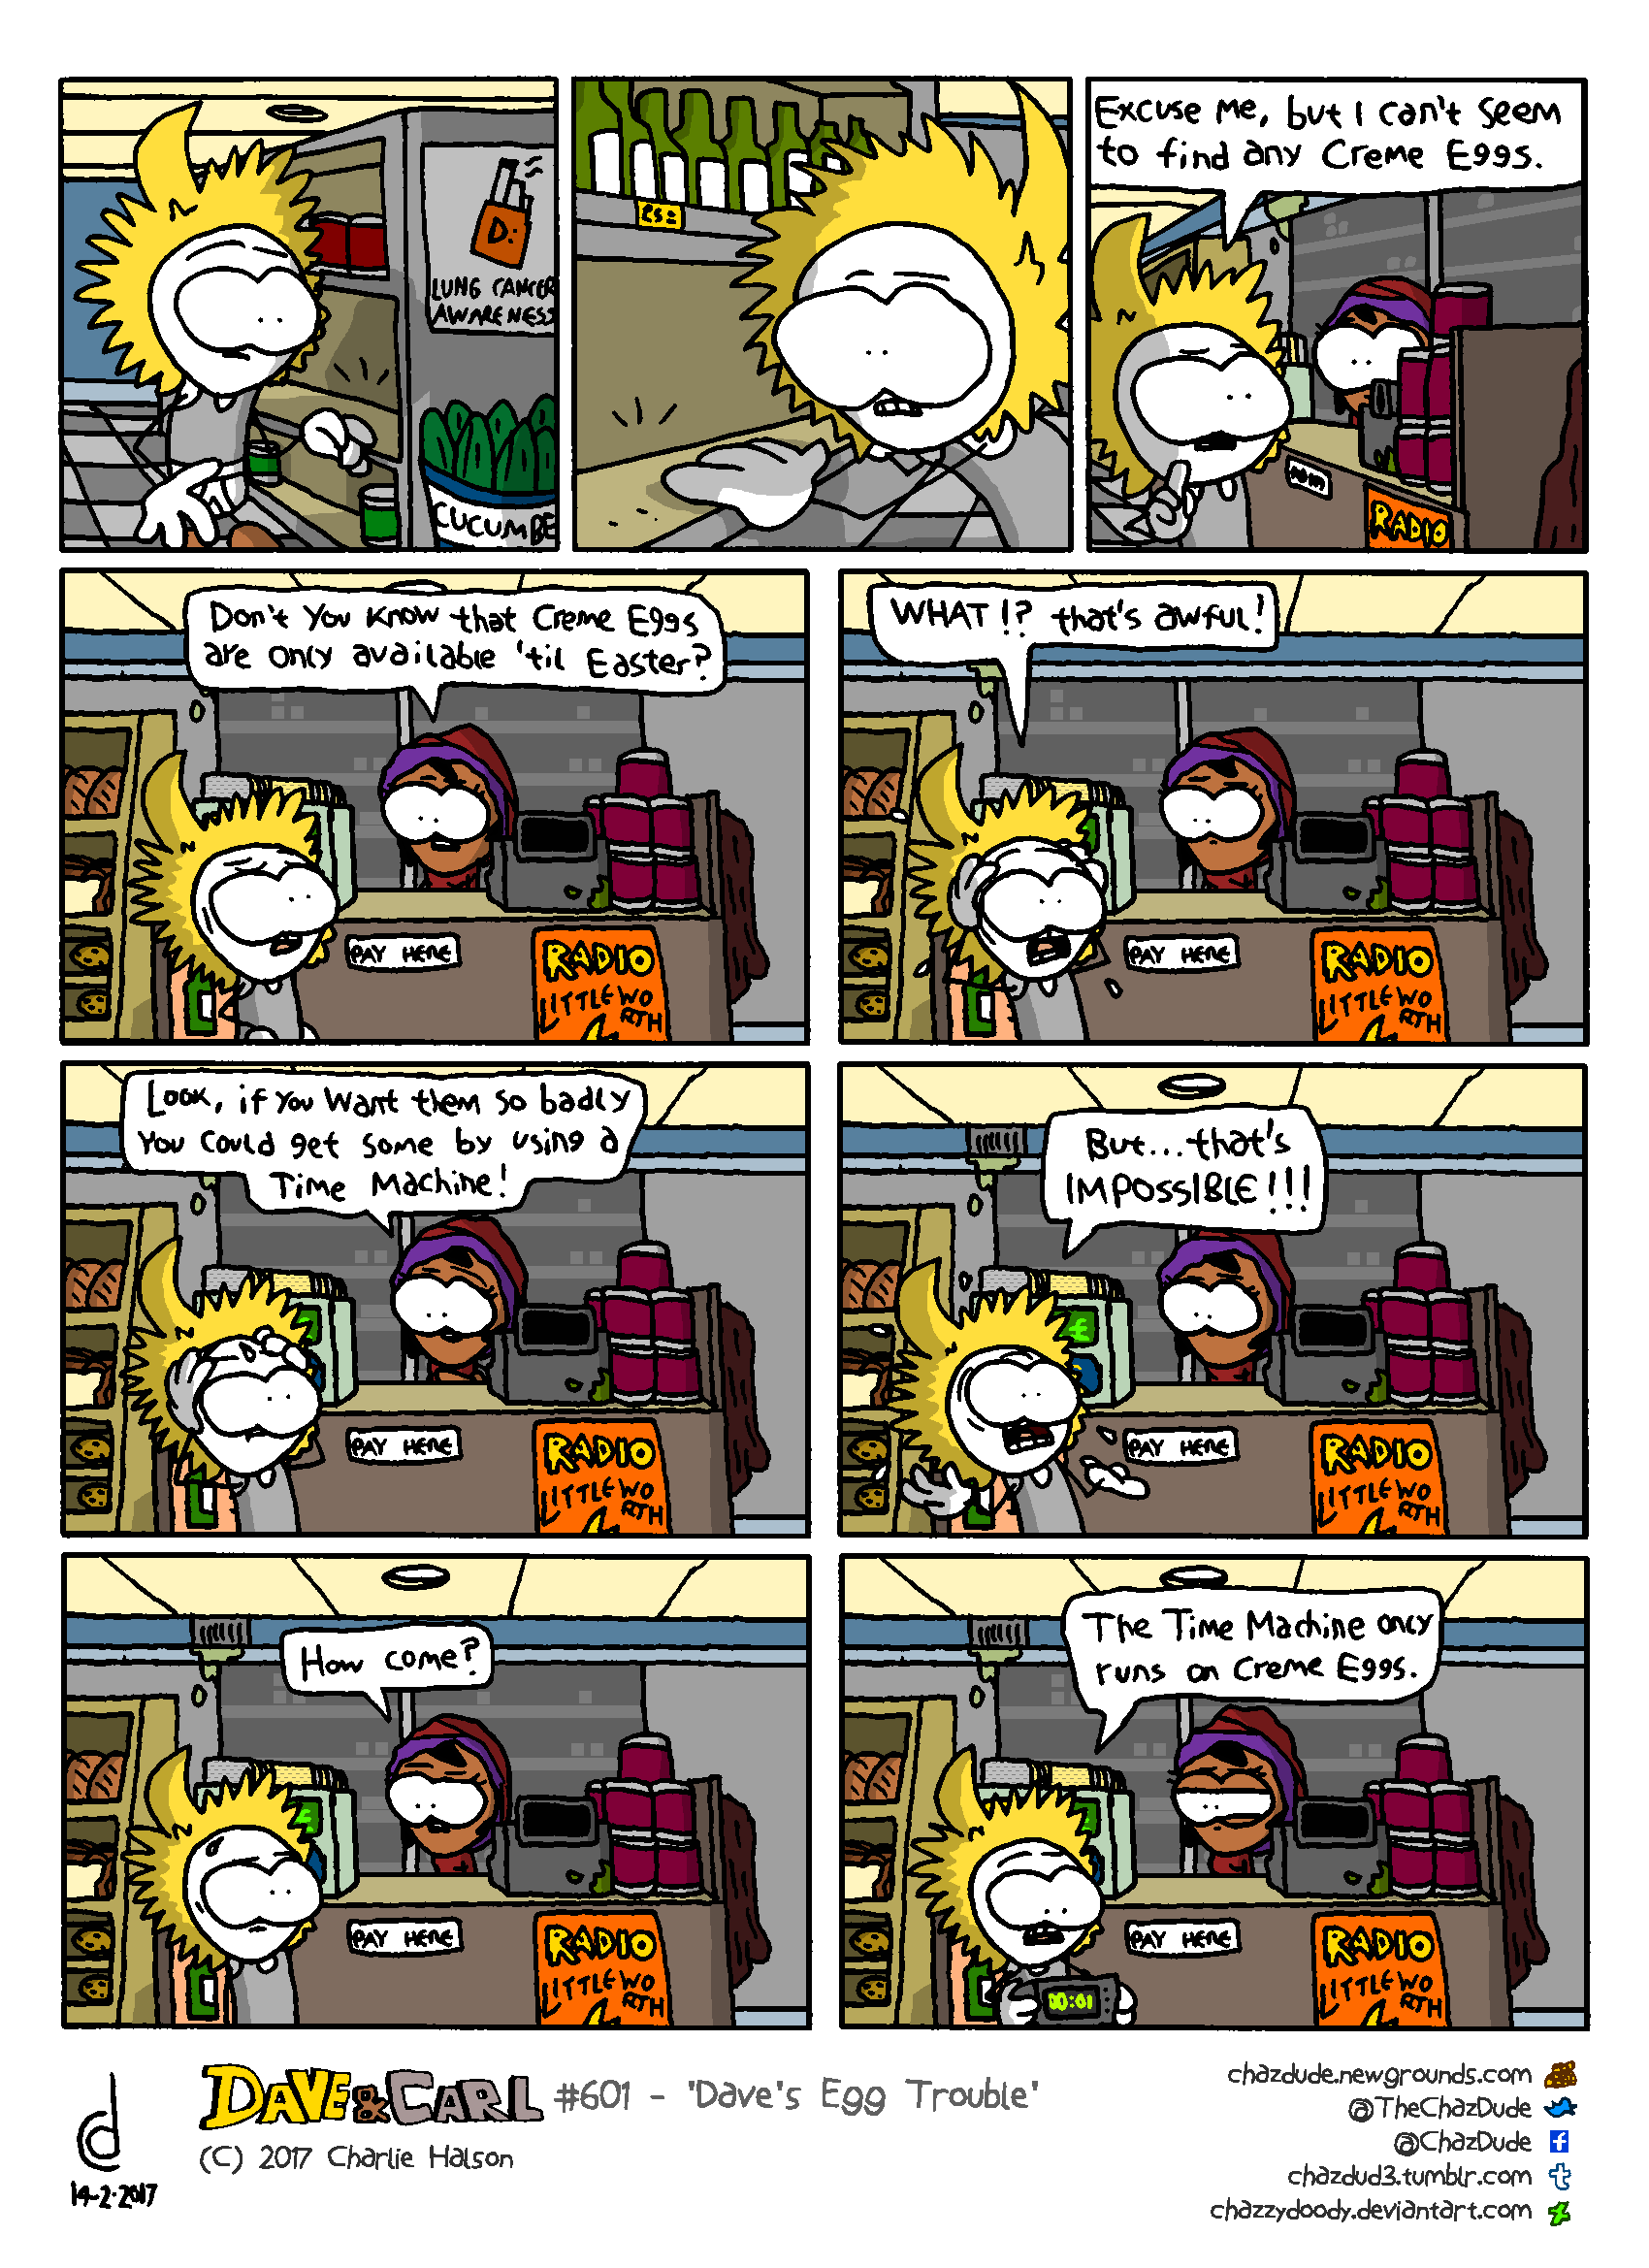 Dave's Egg Trouble